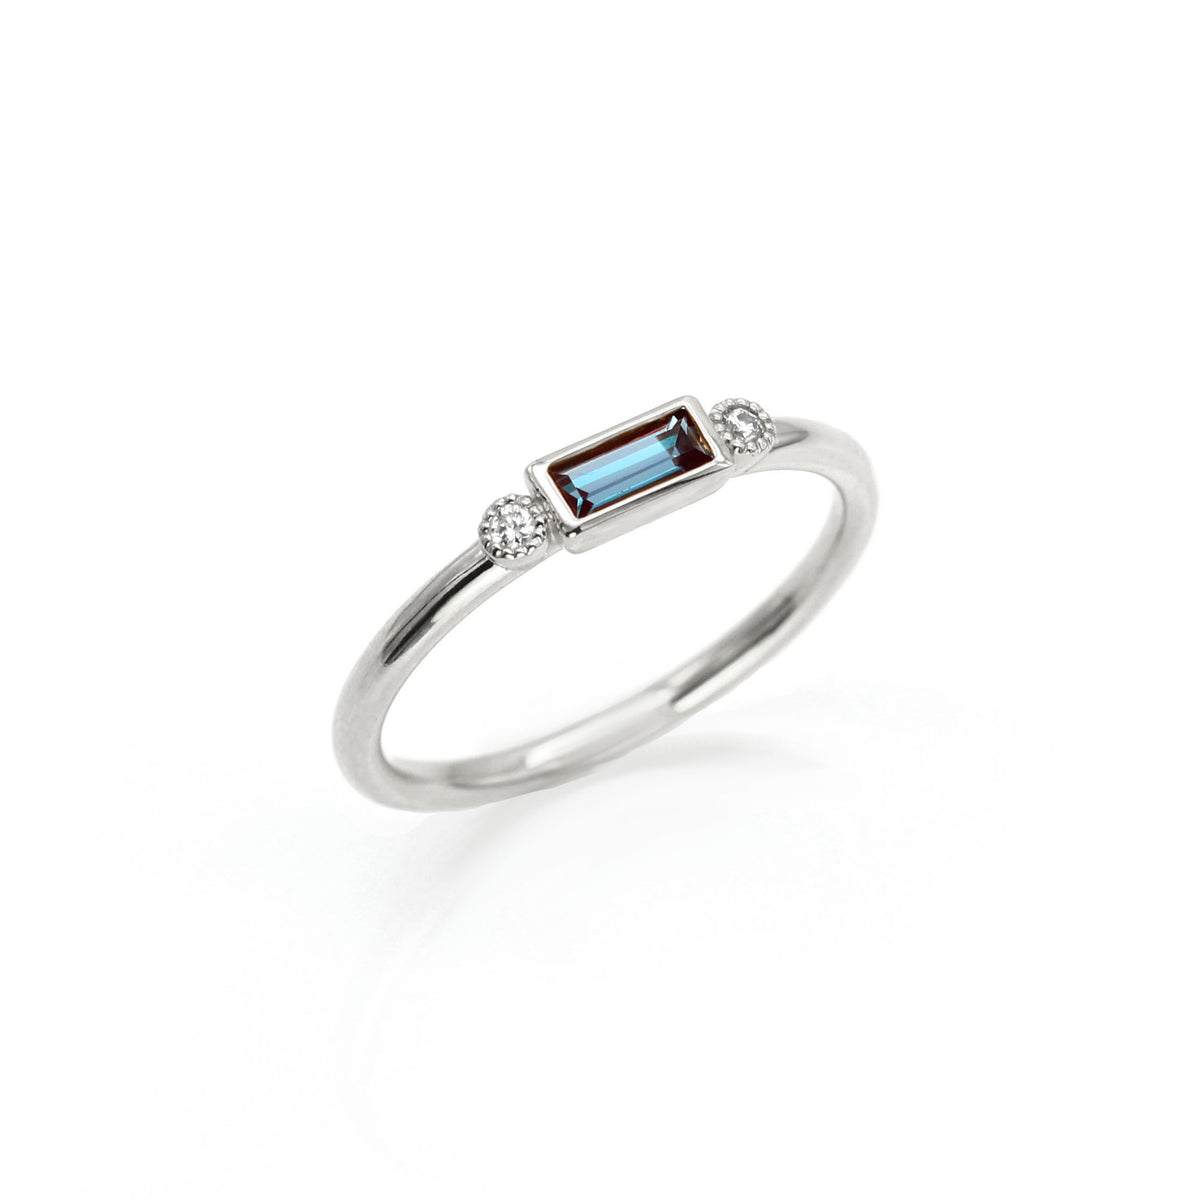 Baguette Birthstone Rings with Accent Diamonds | Palladium White Gold